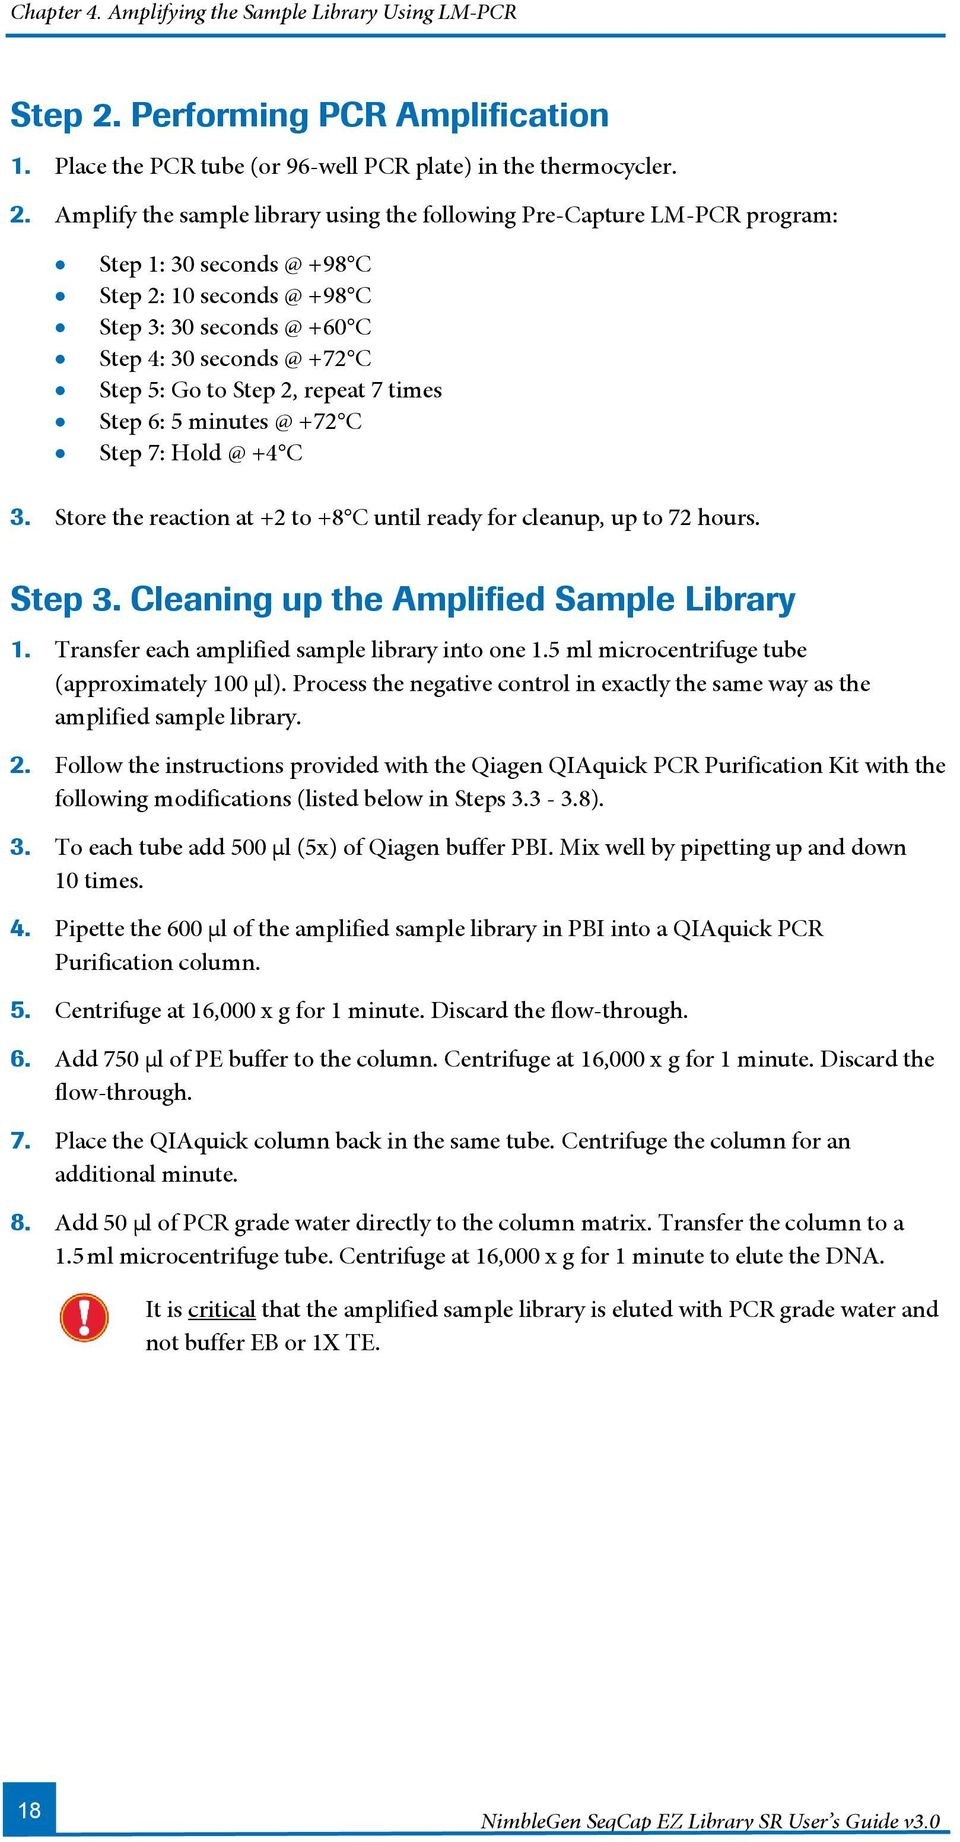 Amplify the sample library using the following Pre-Capture LM-PCR program: Step 1: 30 seconds @ +98 C Step 2: 10 seconds @ +98 C Step 3: 30 seconds @ +60 C Step 4: 30 seconds @ +72 C Step 5: Go to